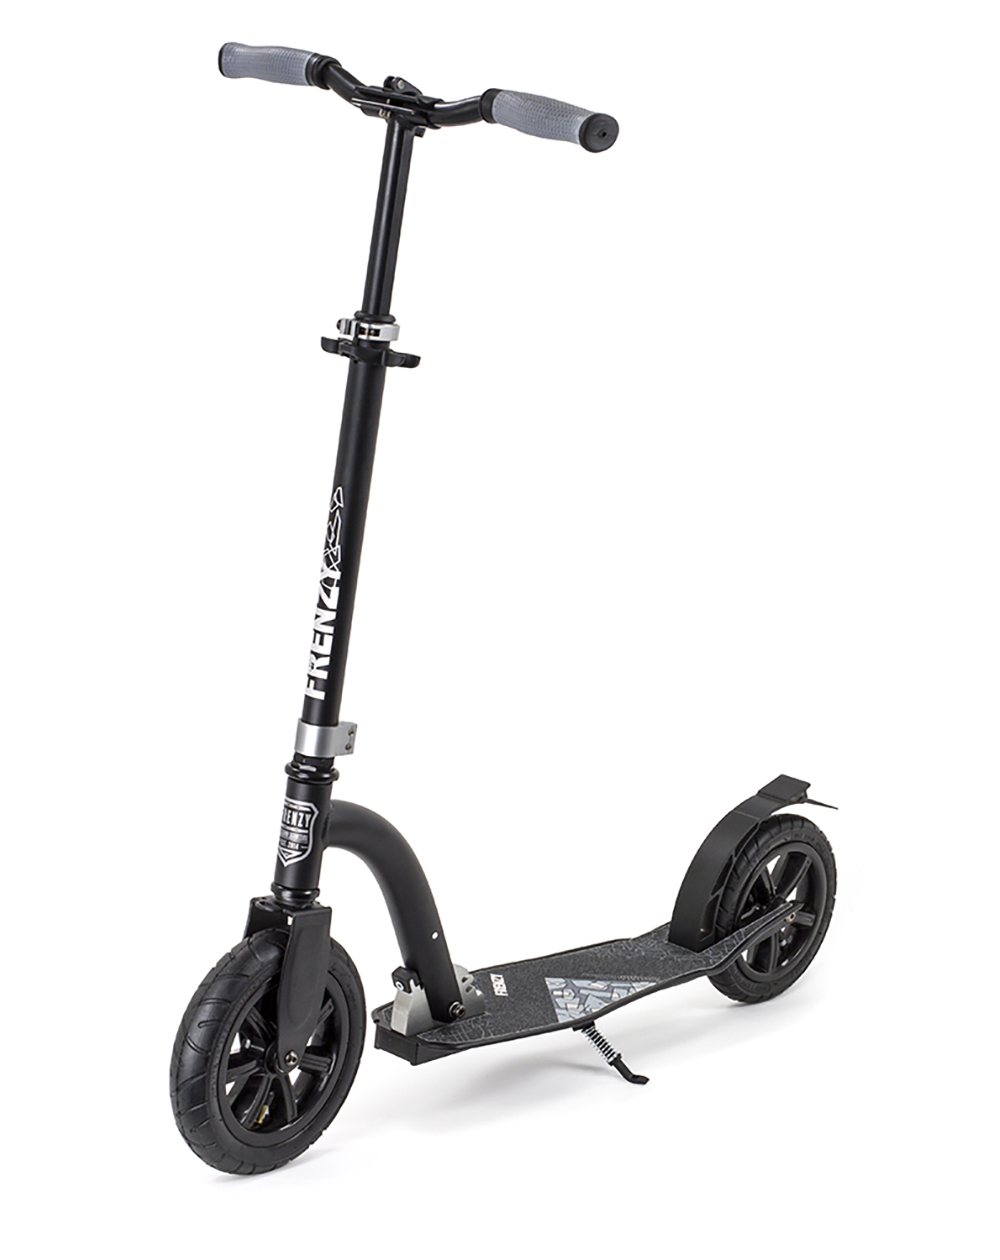 Frenzy 230mm Pneumatic Recreational Scooter Black